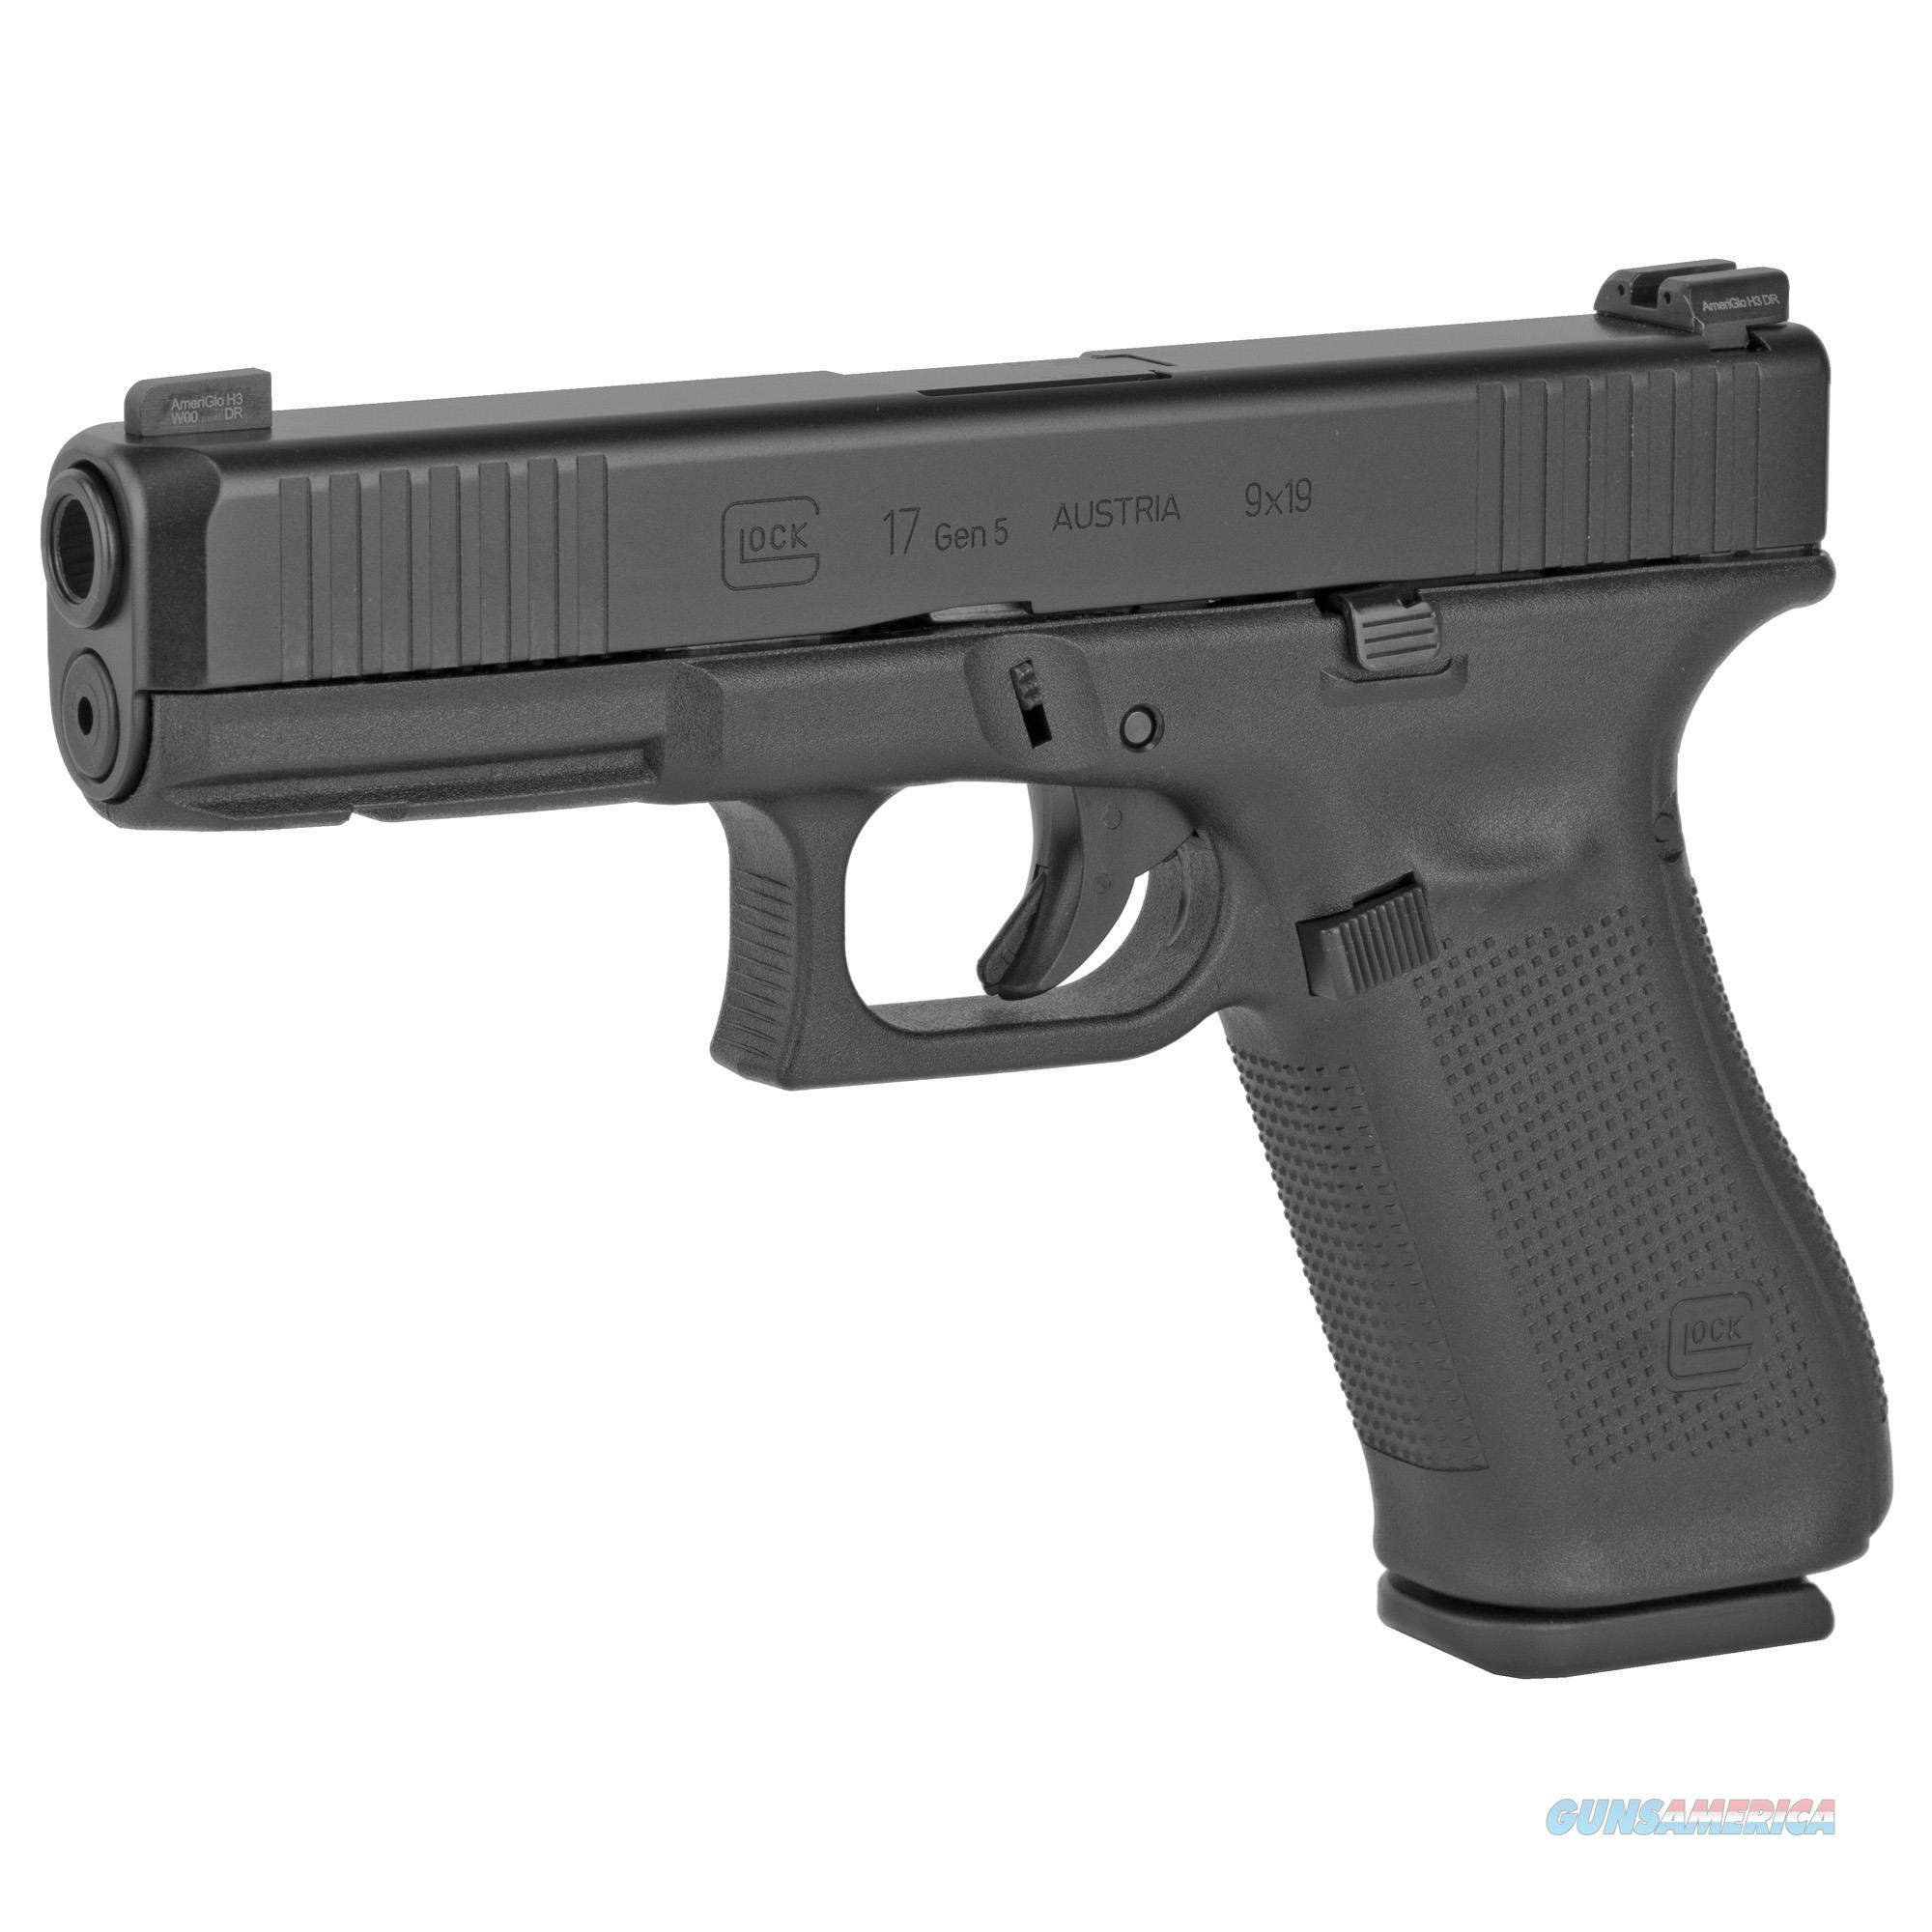 "Glock G17 Gen5 with AmeriGlo Sight 9mm 4.49"" 17+1 - New in Case  Guns > Pistols > Glock Pistols > 17"